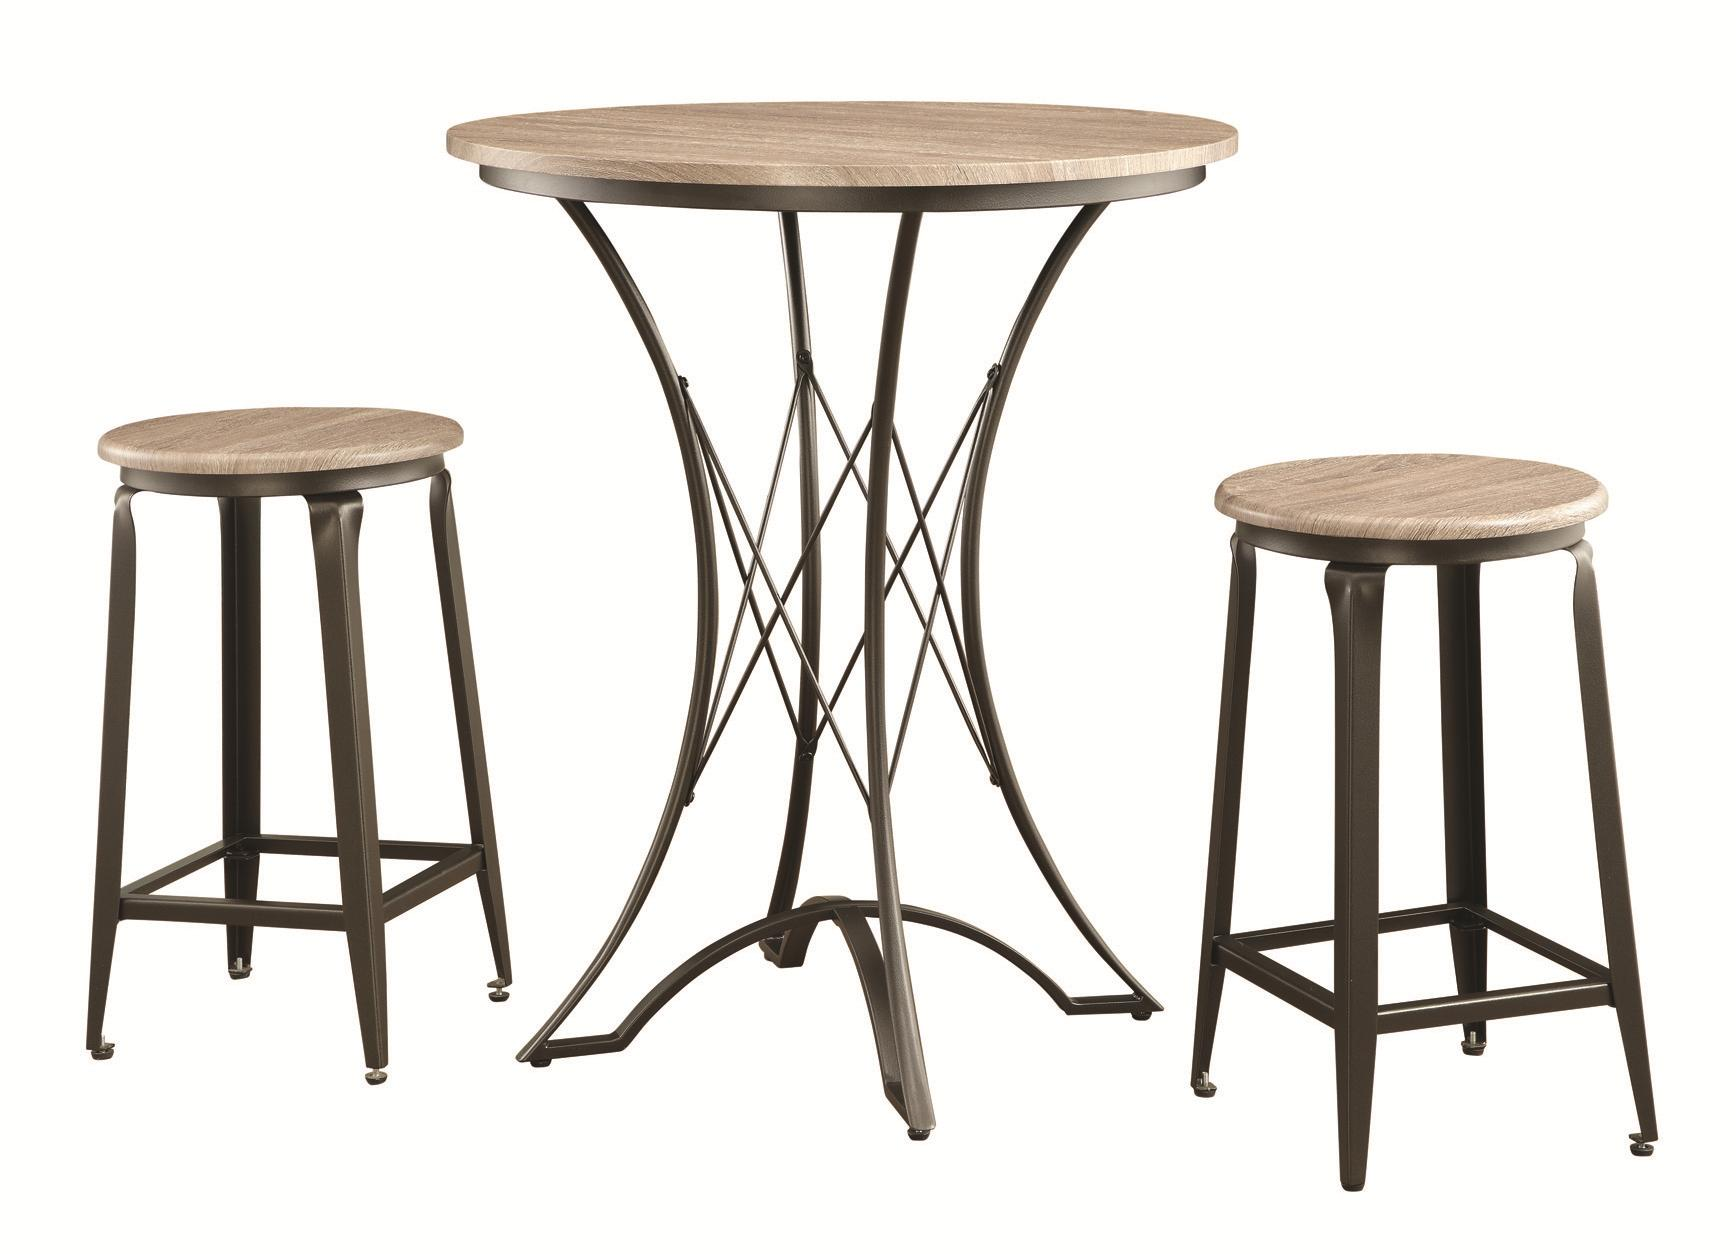 Bar Height Table And Stools Outdoor Dining Room